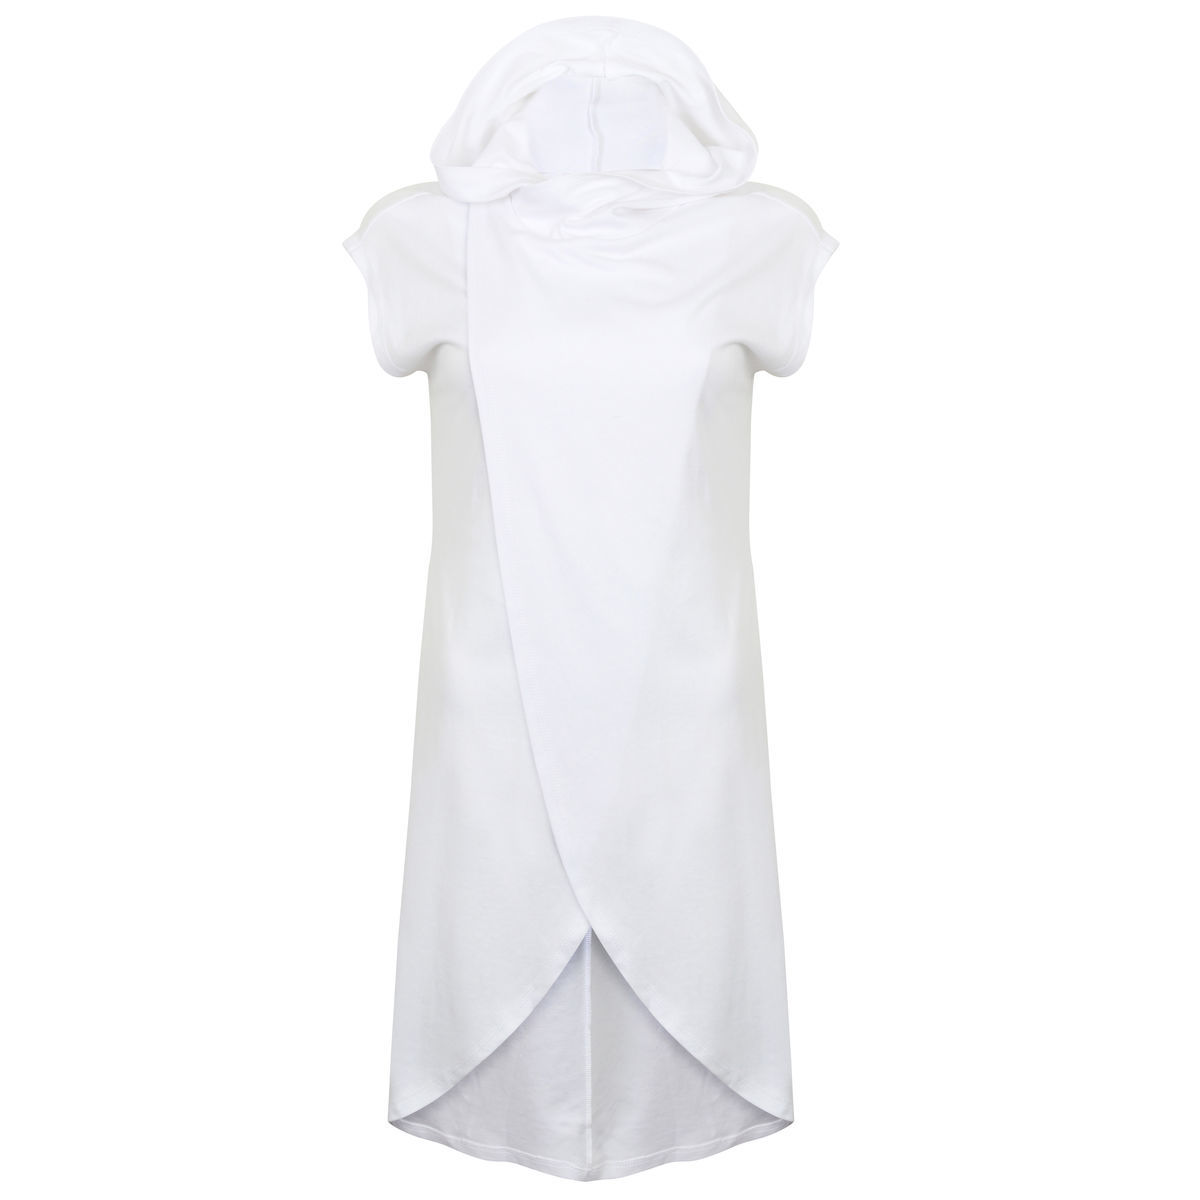 Sleeveless Running Hoodie (White) - product image